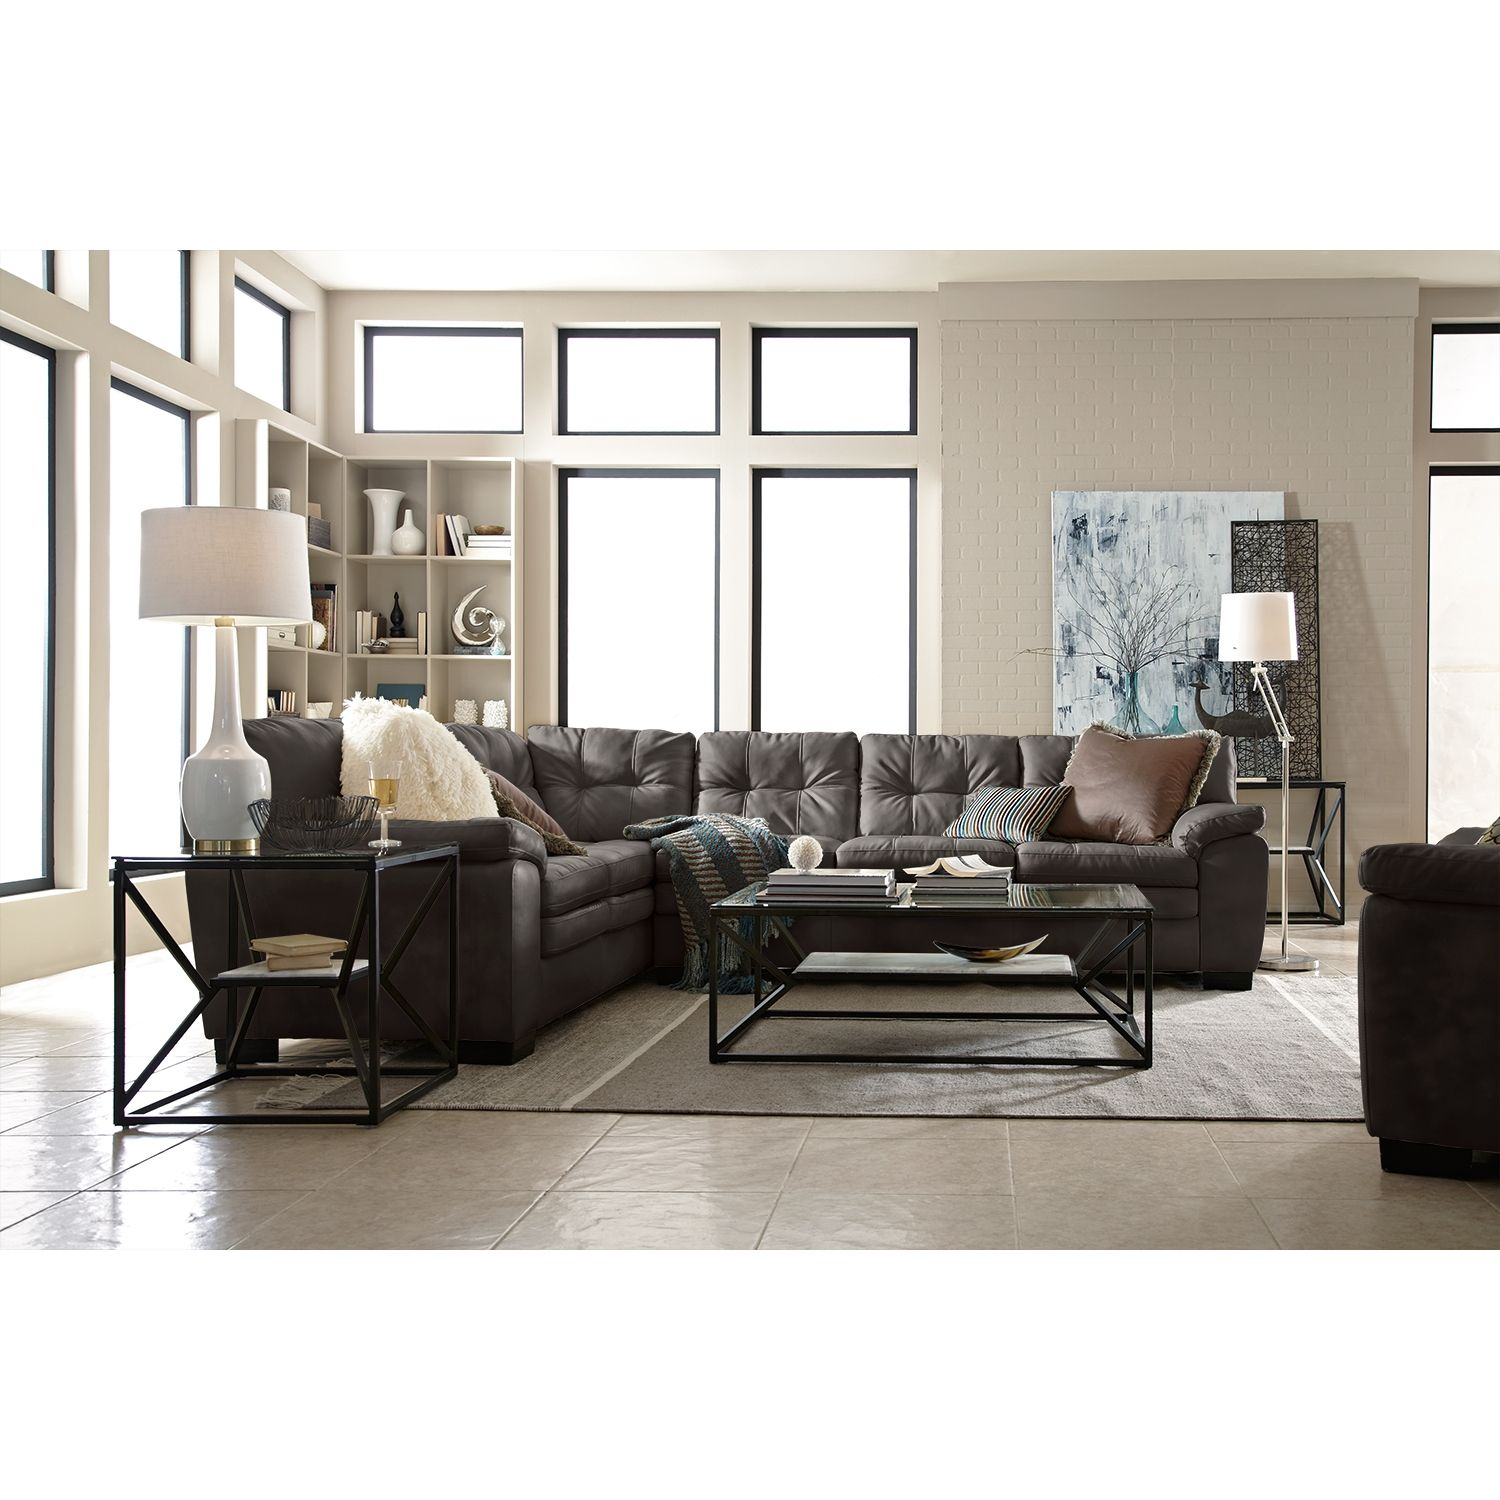 Legend Gray II Leather Collection   Value City Furniture